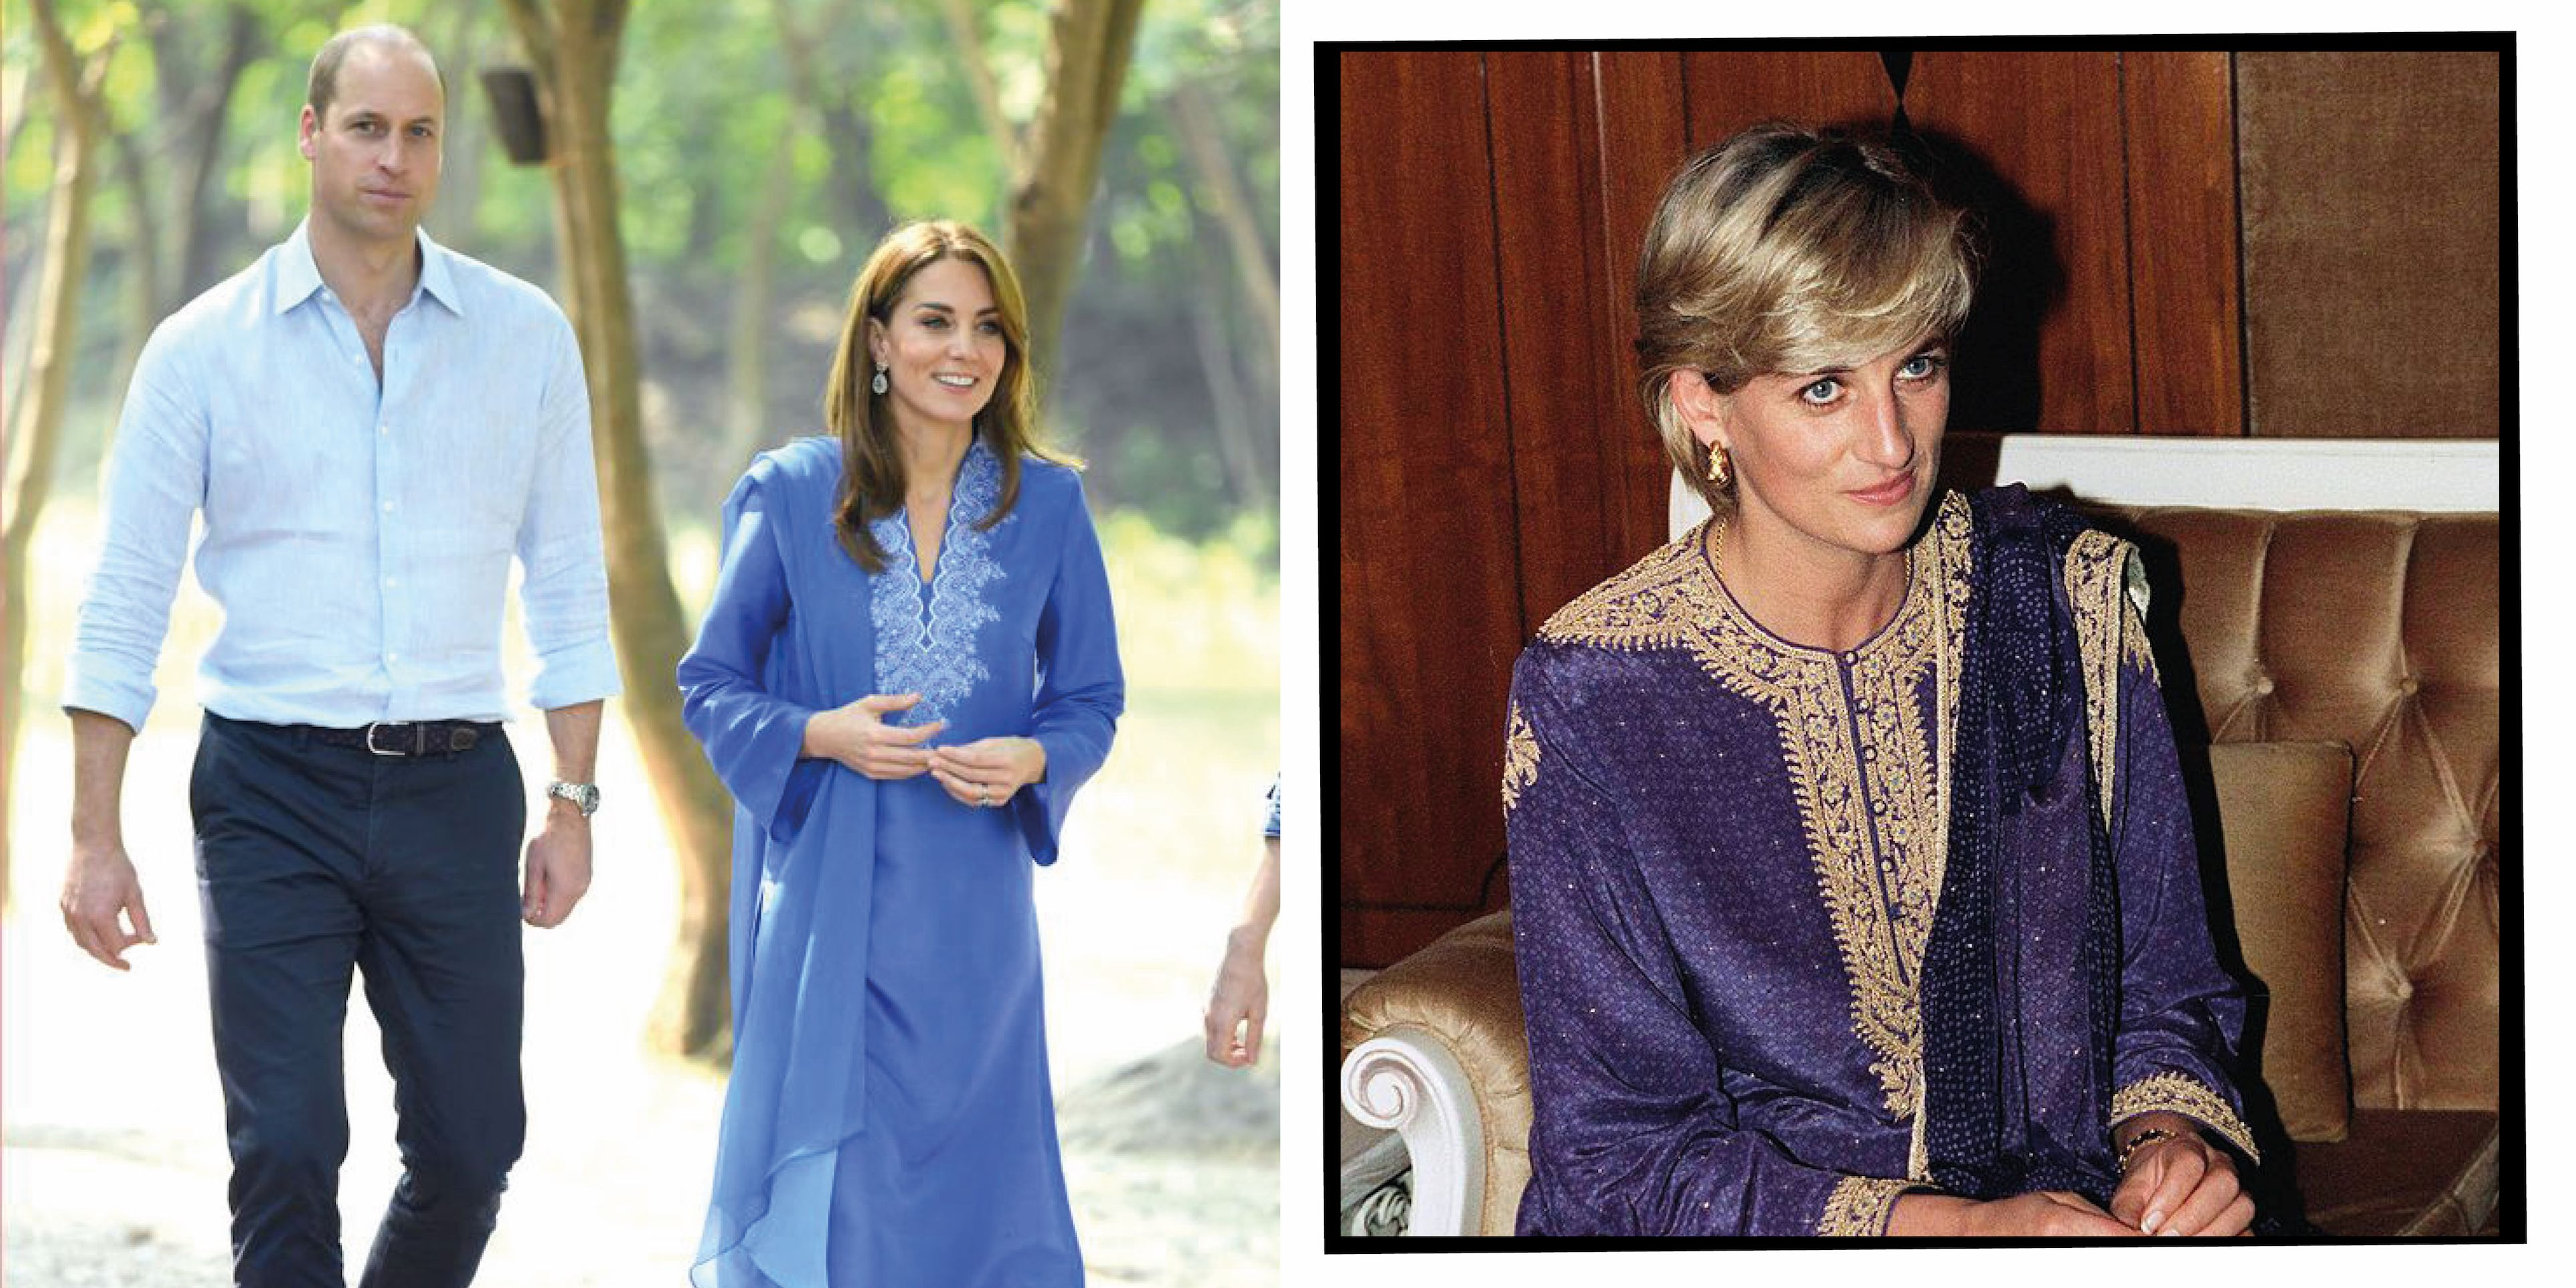 Kate Middleton And Princess Diana's Style: Every Time The Duchess Of Cambridge Twinned With Lady Diana Spencer